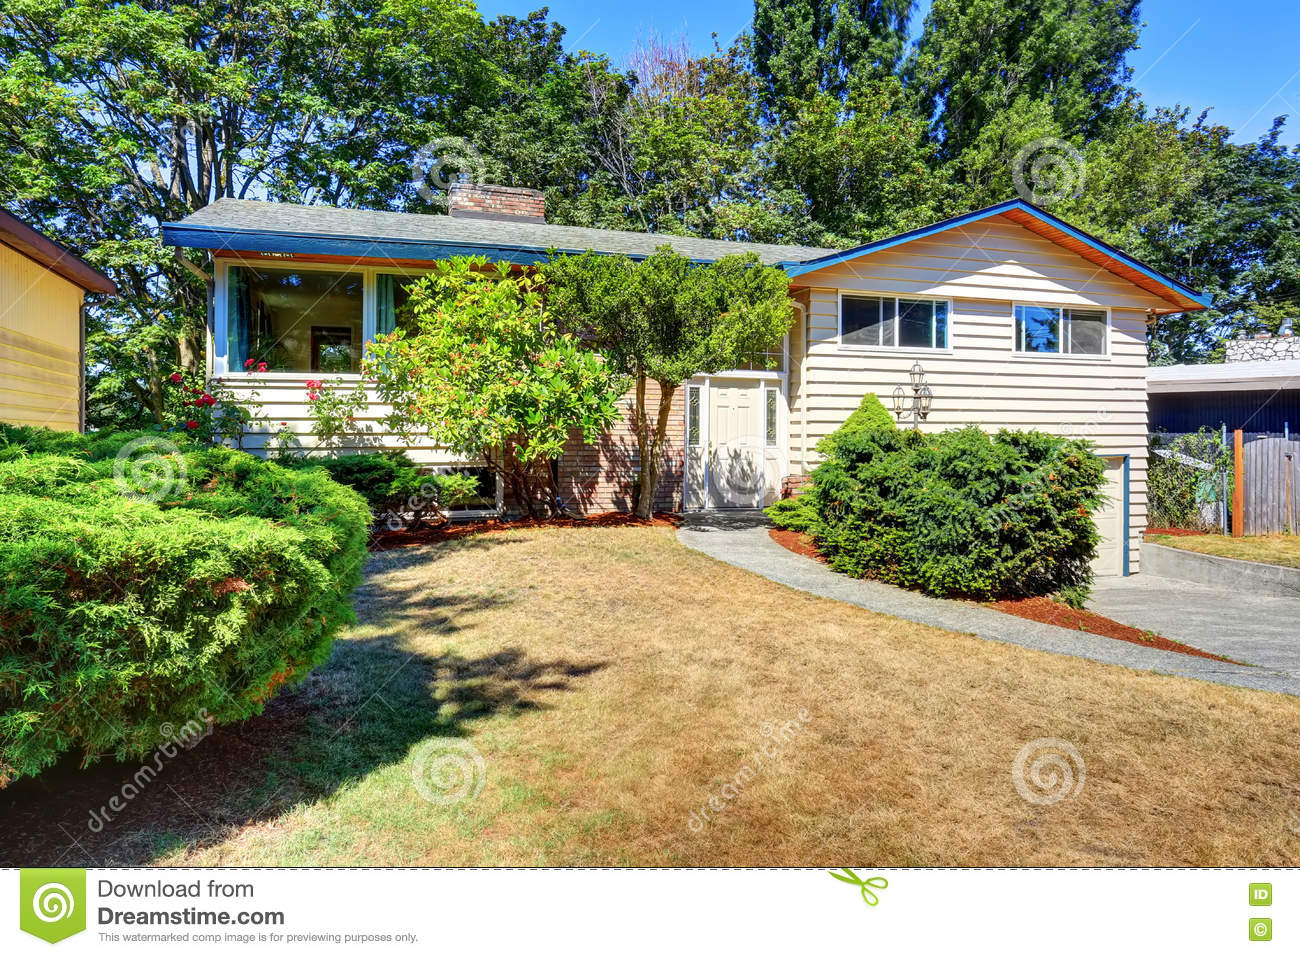 Terrific Small Cute American House With Green Shrubs Stock Photo Image Largest Home Design Picture Inspirations Pitcheantrous